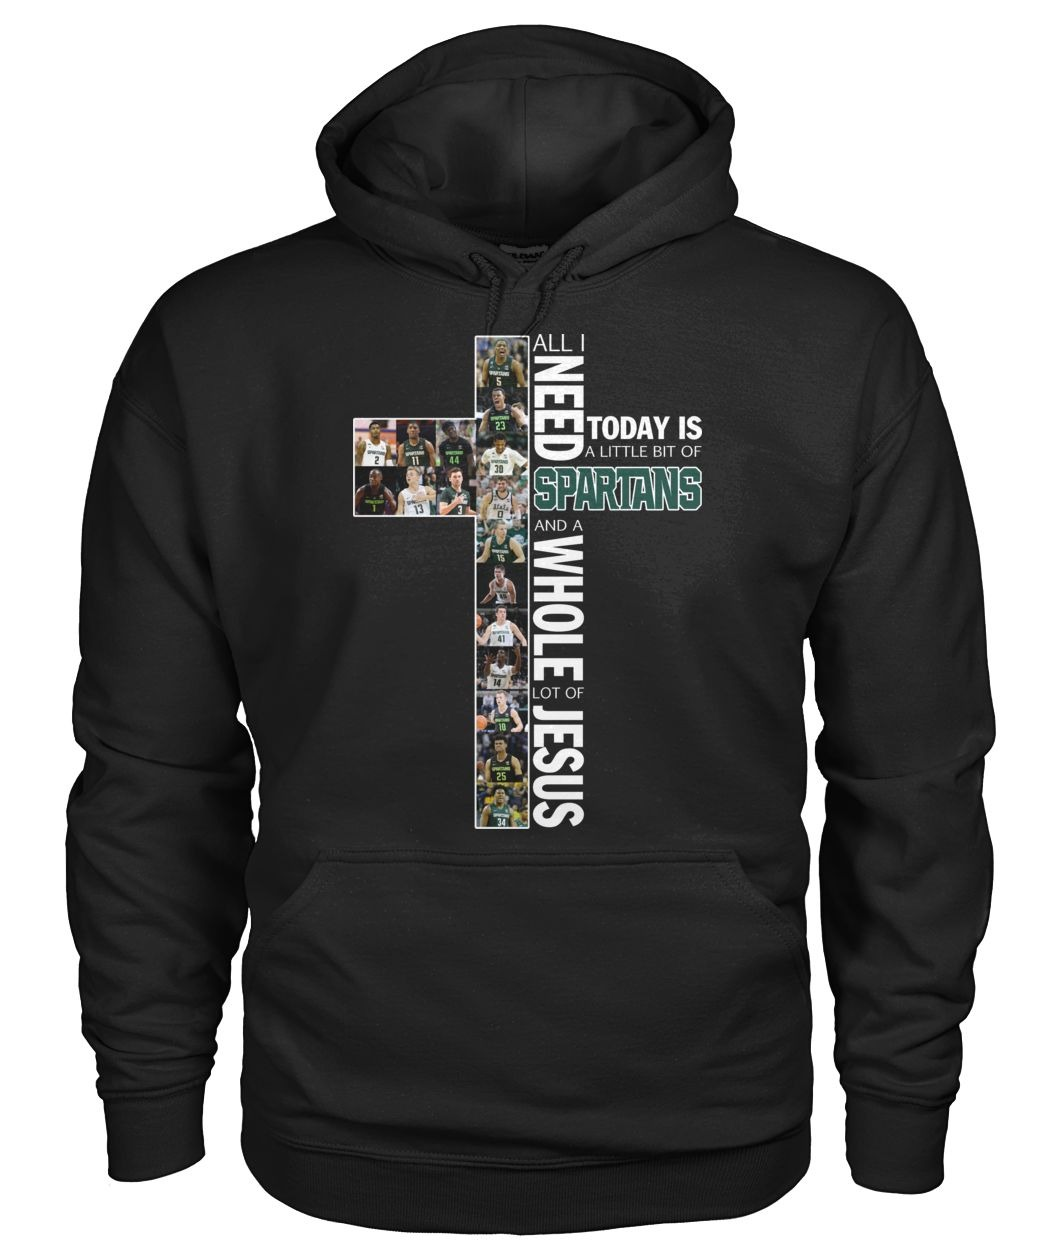 All i need today is a little bit of Spartans and a whole lot of Jesus hoodie